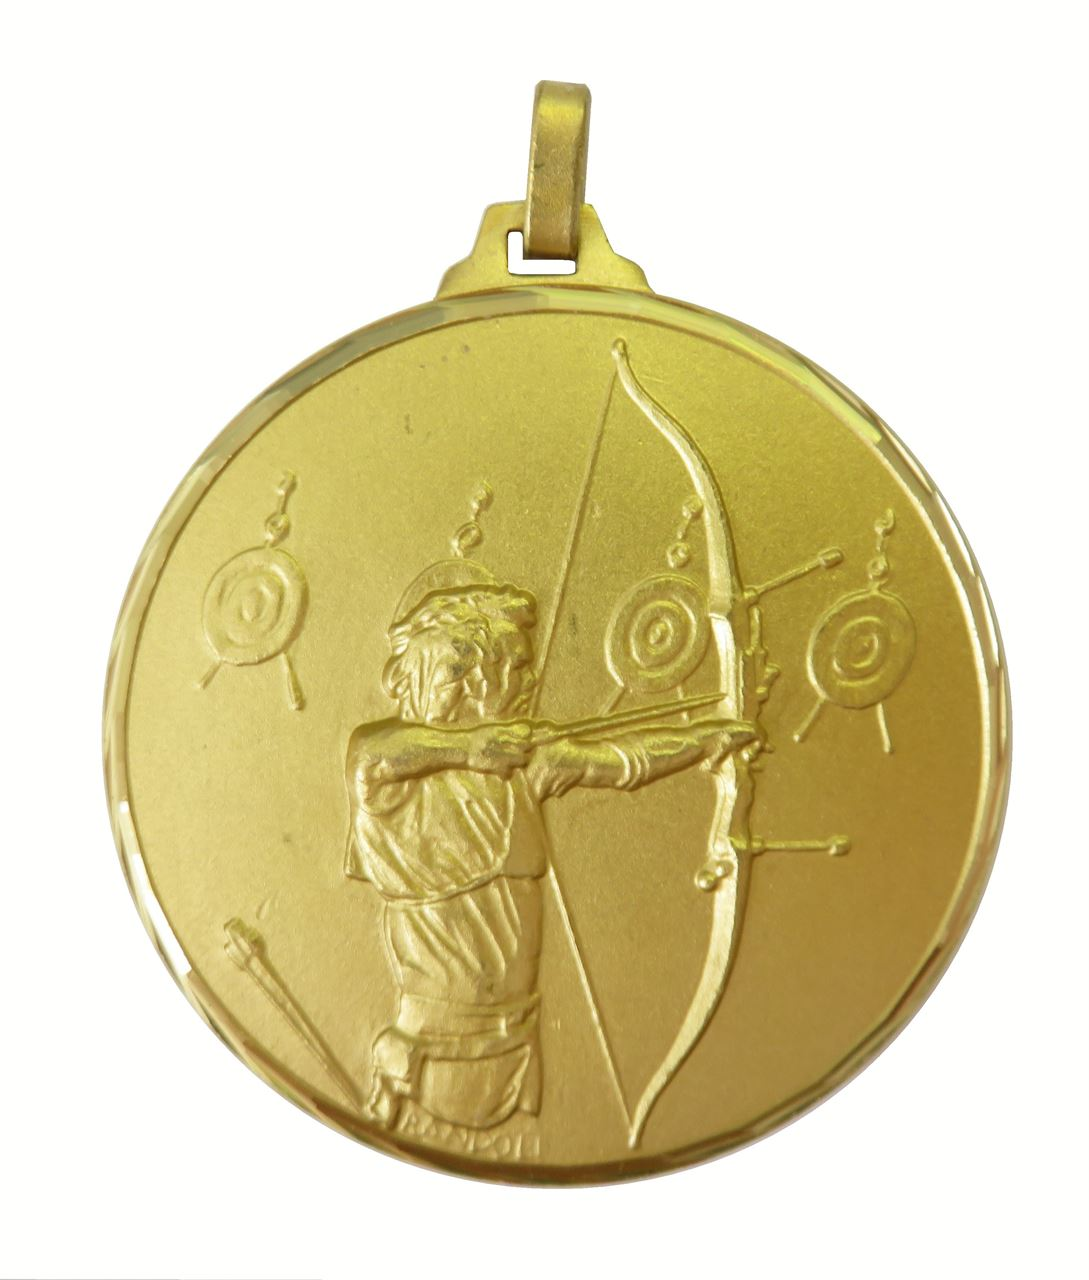 Gold Faceted Archery Medal (size: 52mm) - 337/52G